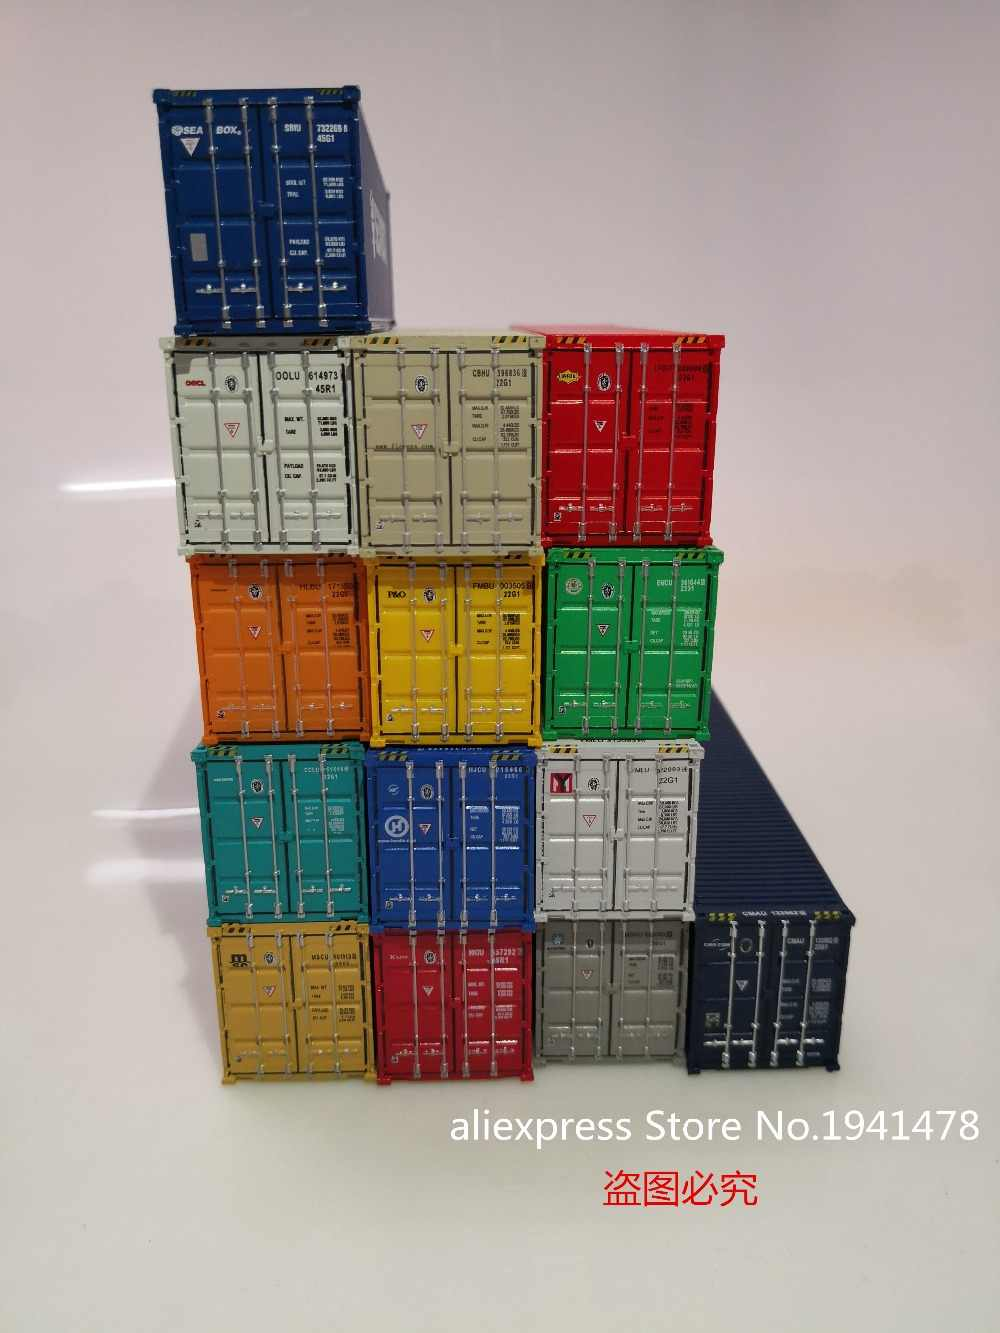 1/87 Exquisite Model Train Ho Scale 40GP Container DIY